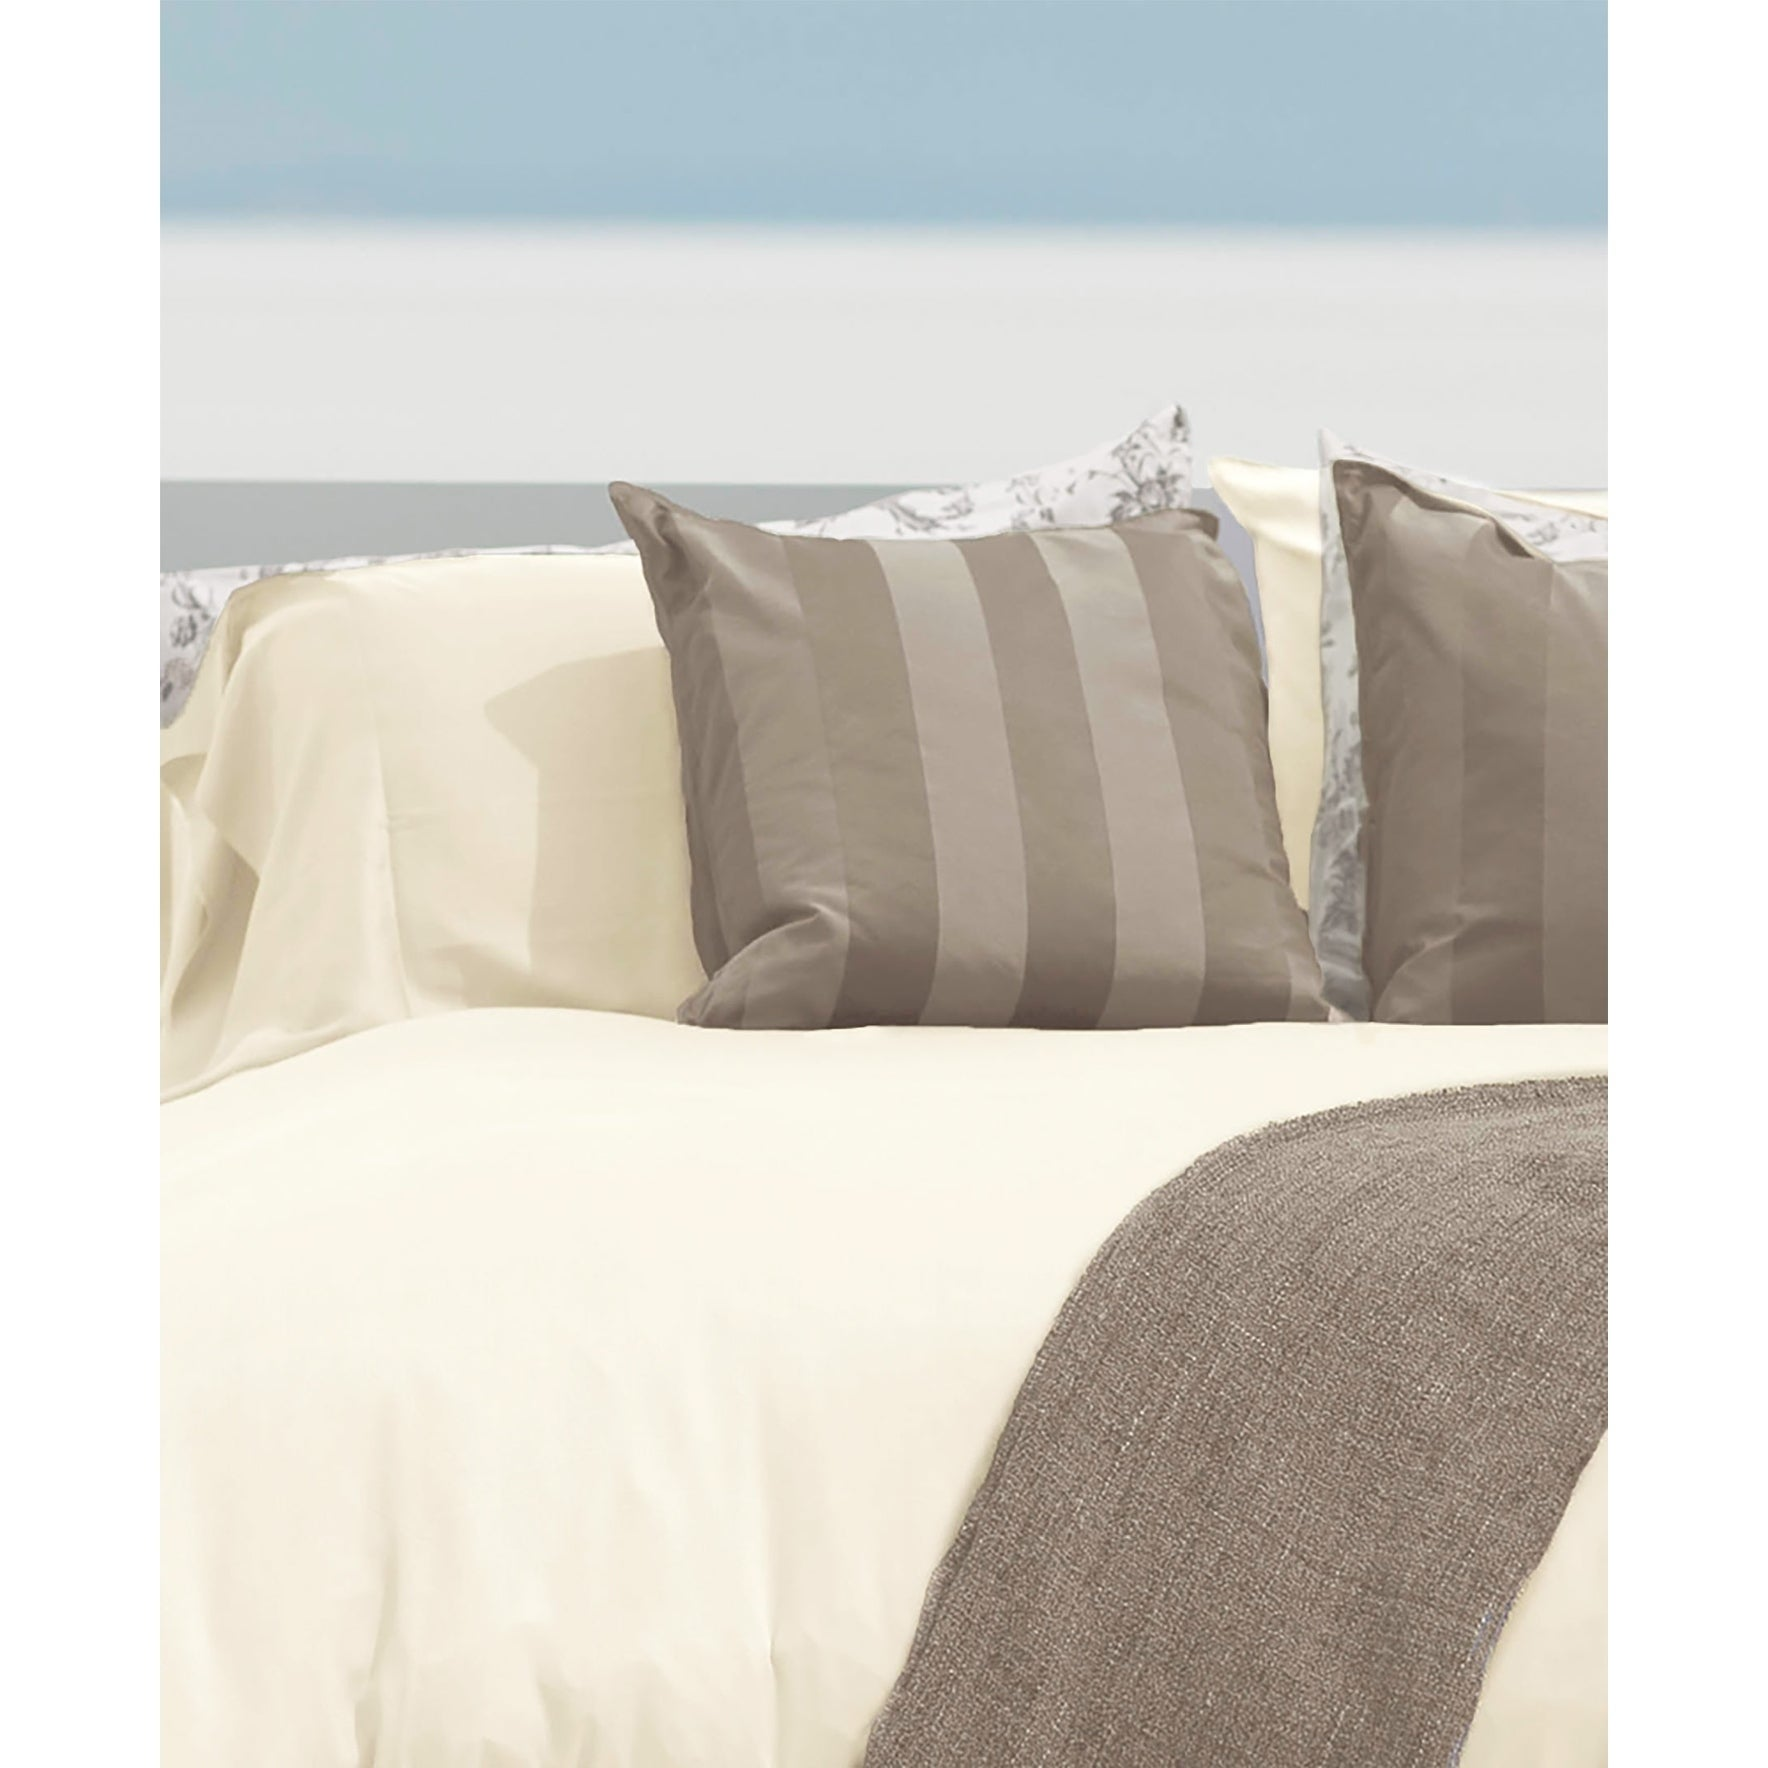 830236ab48e Shop Cariloha Luxury Viscose from Bamboo 4-Piece Classic Bed Sheet Set - On  Sale - Free Shipping Today - Overstock - 10761178